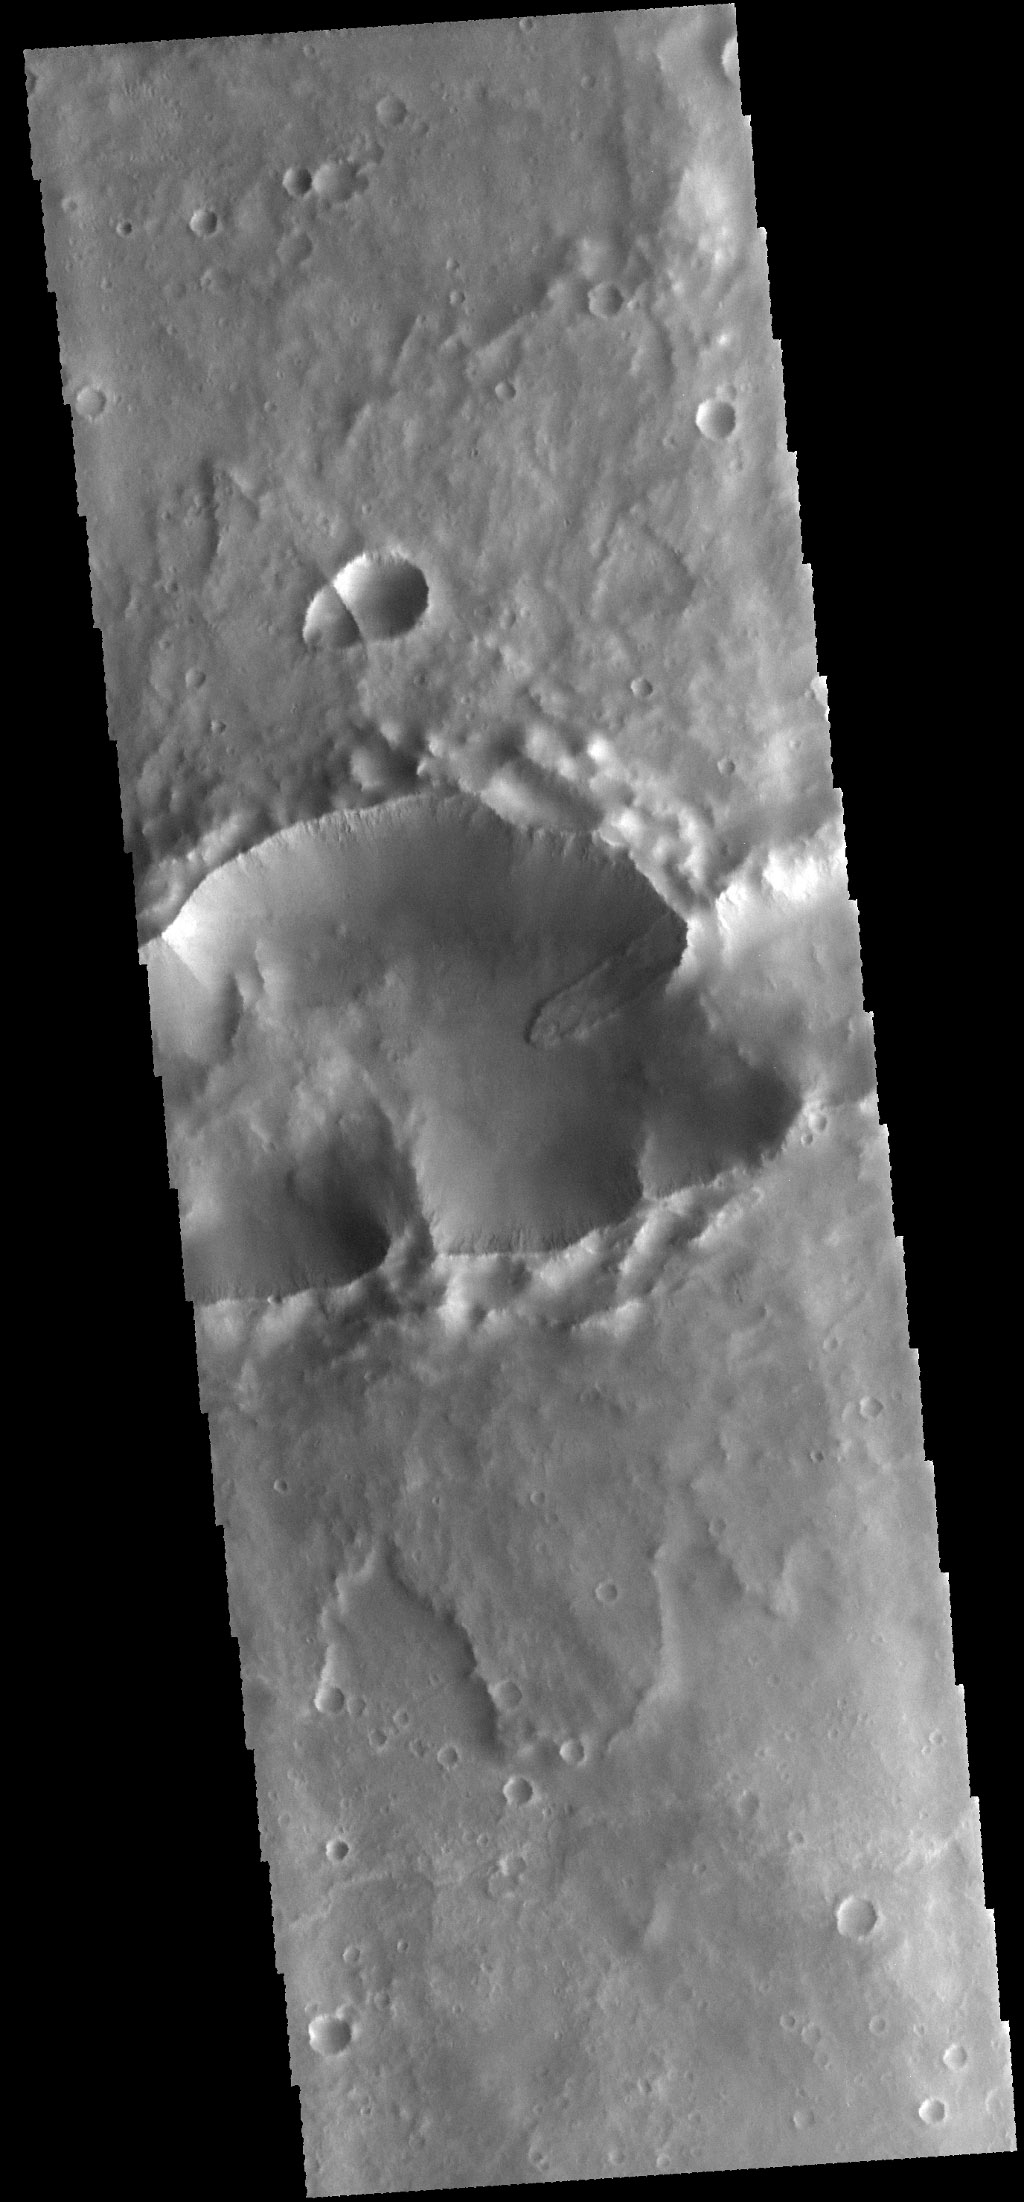 This image from NASA's 2001 Mars Odyssey spacecraft shows a landslide deposit within a complex crater (note the ejecta to the top and bottom of the image). There is a smaller complex crater on the ejecta to the north of the larger crater.